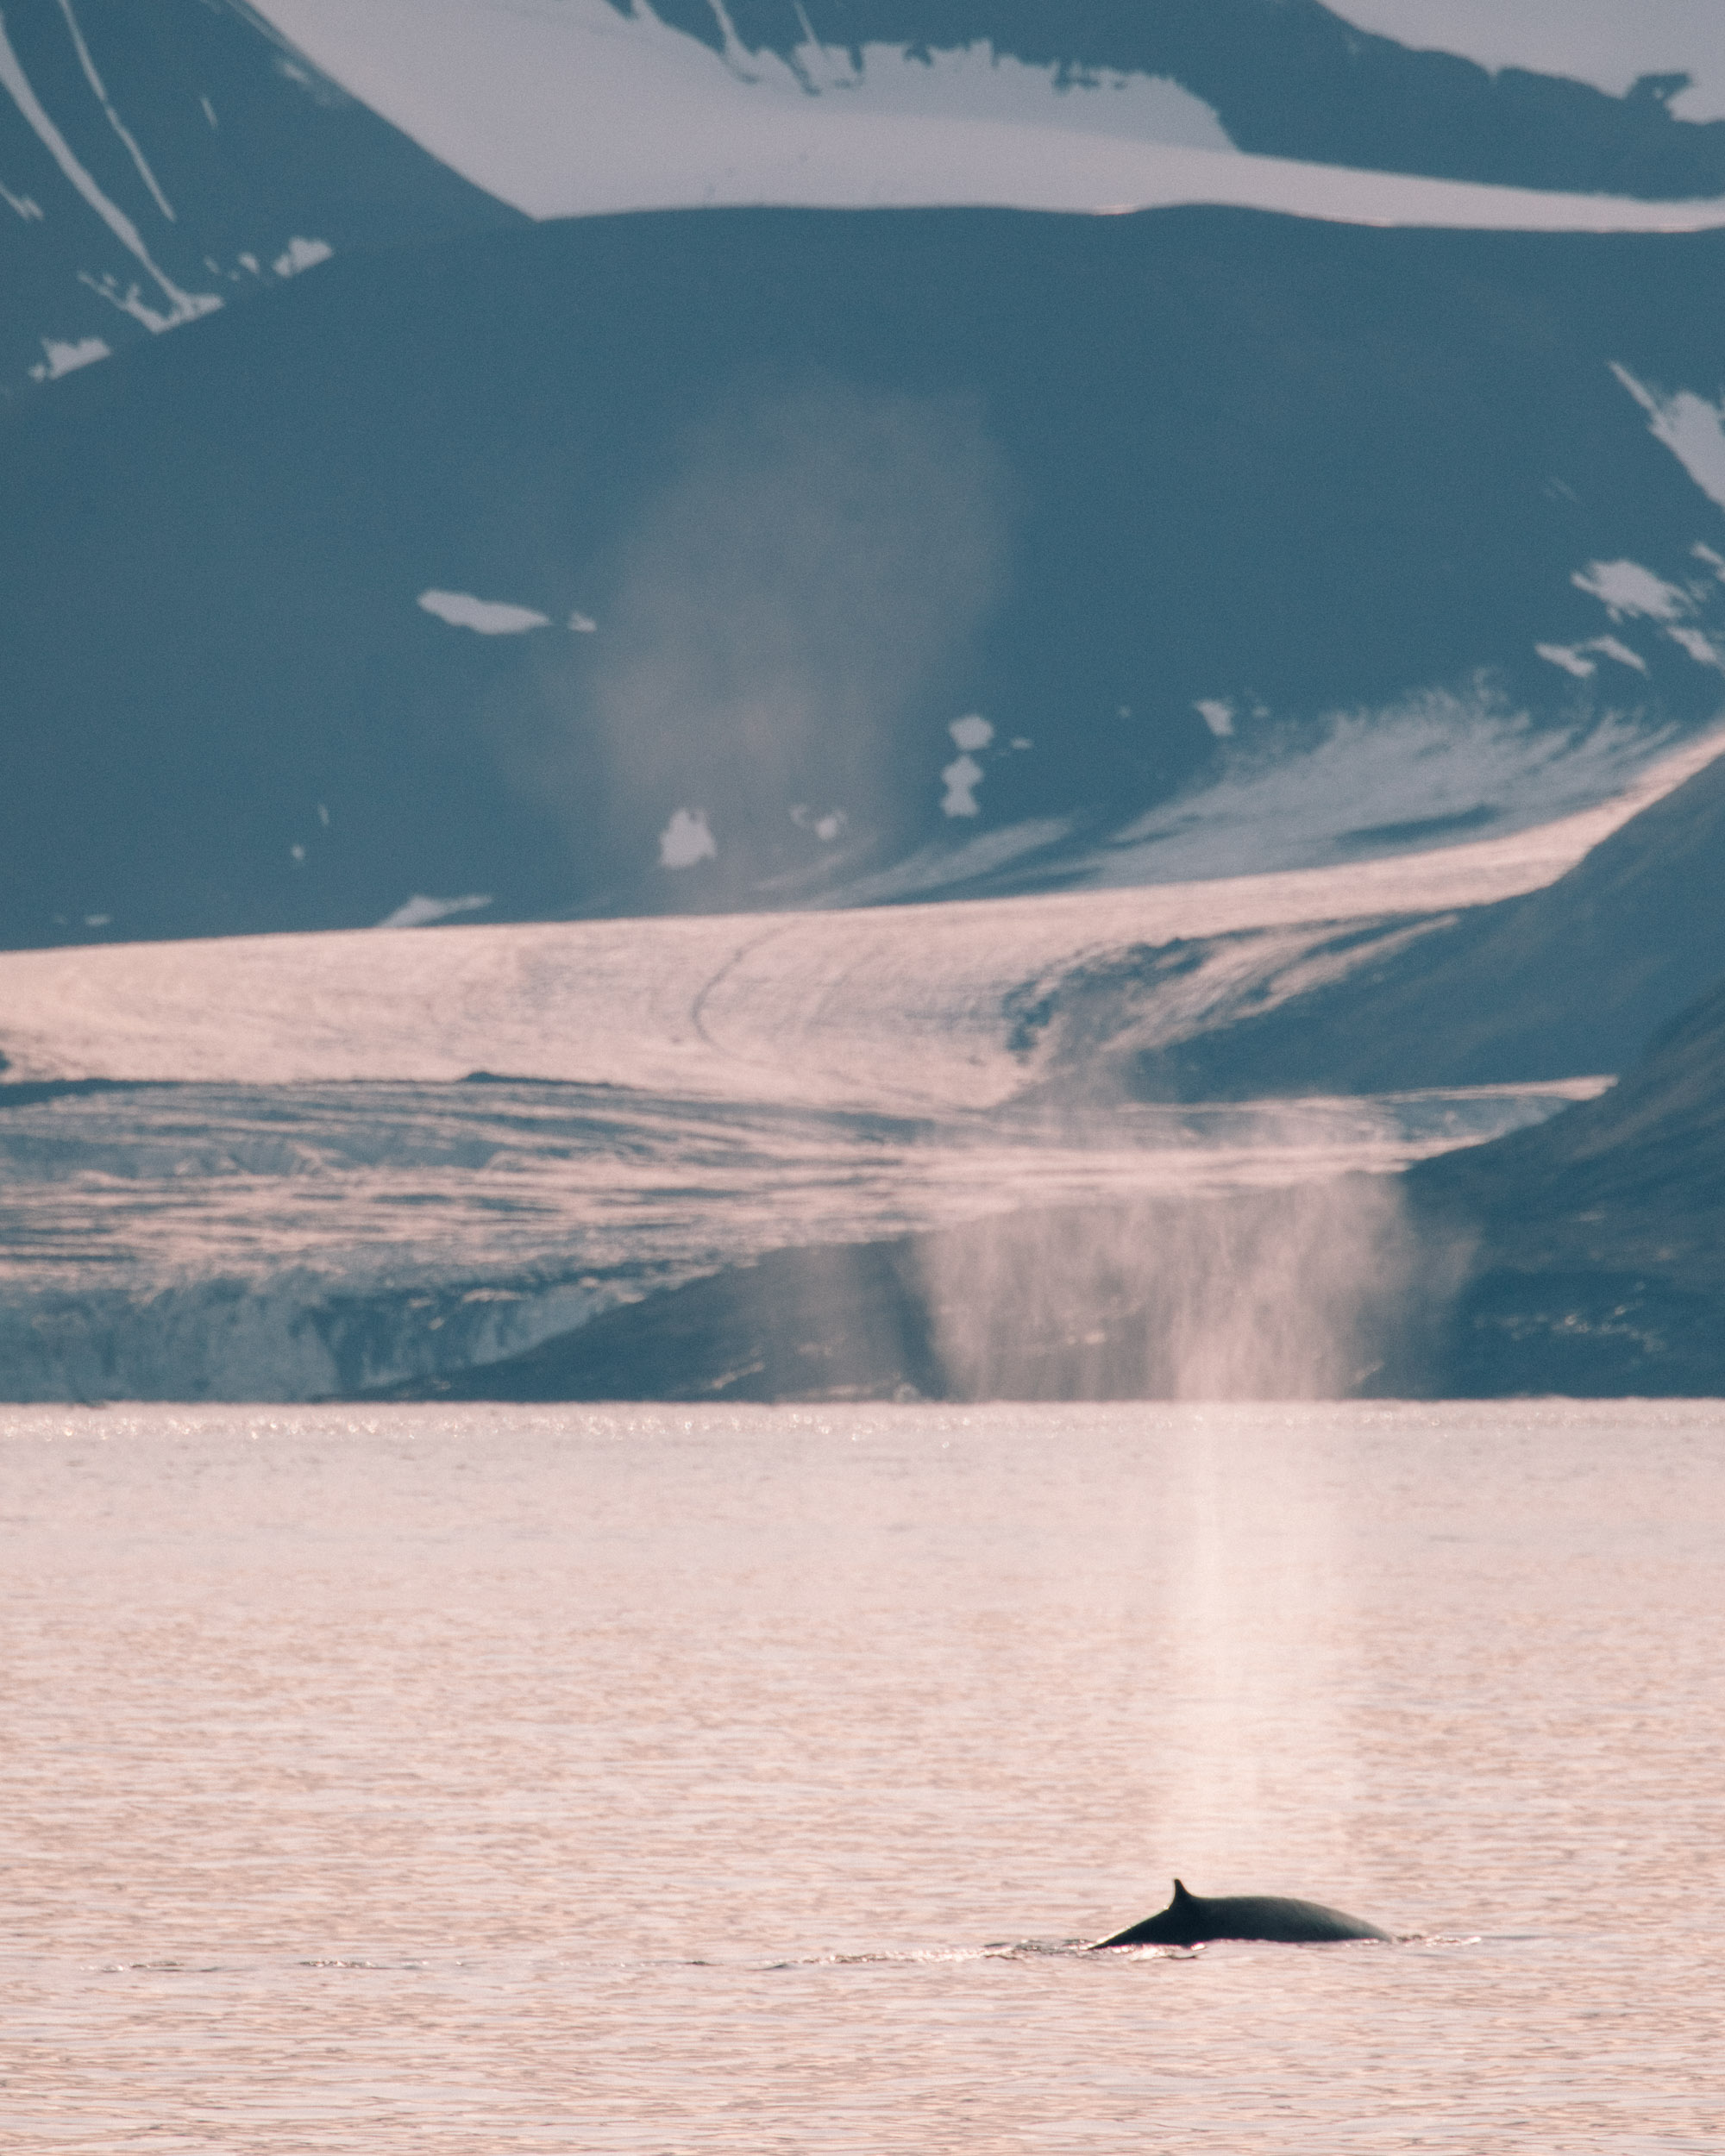 Whales in front of a glacier in Svalbard, Spitsbergen, Norway